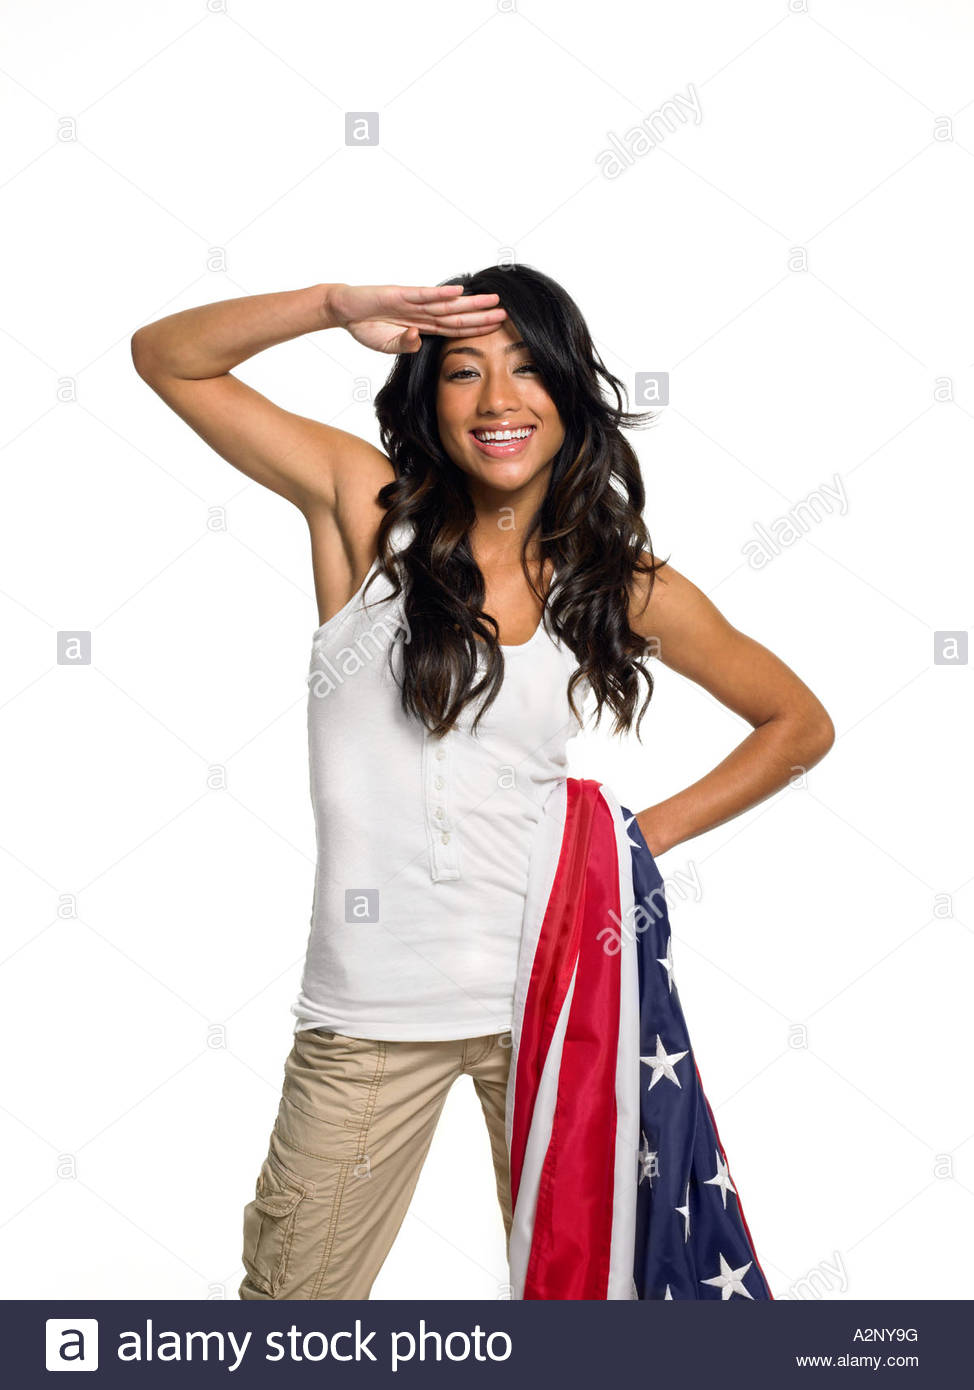 Woman holding a flag and saluting - Stock Image